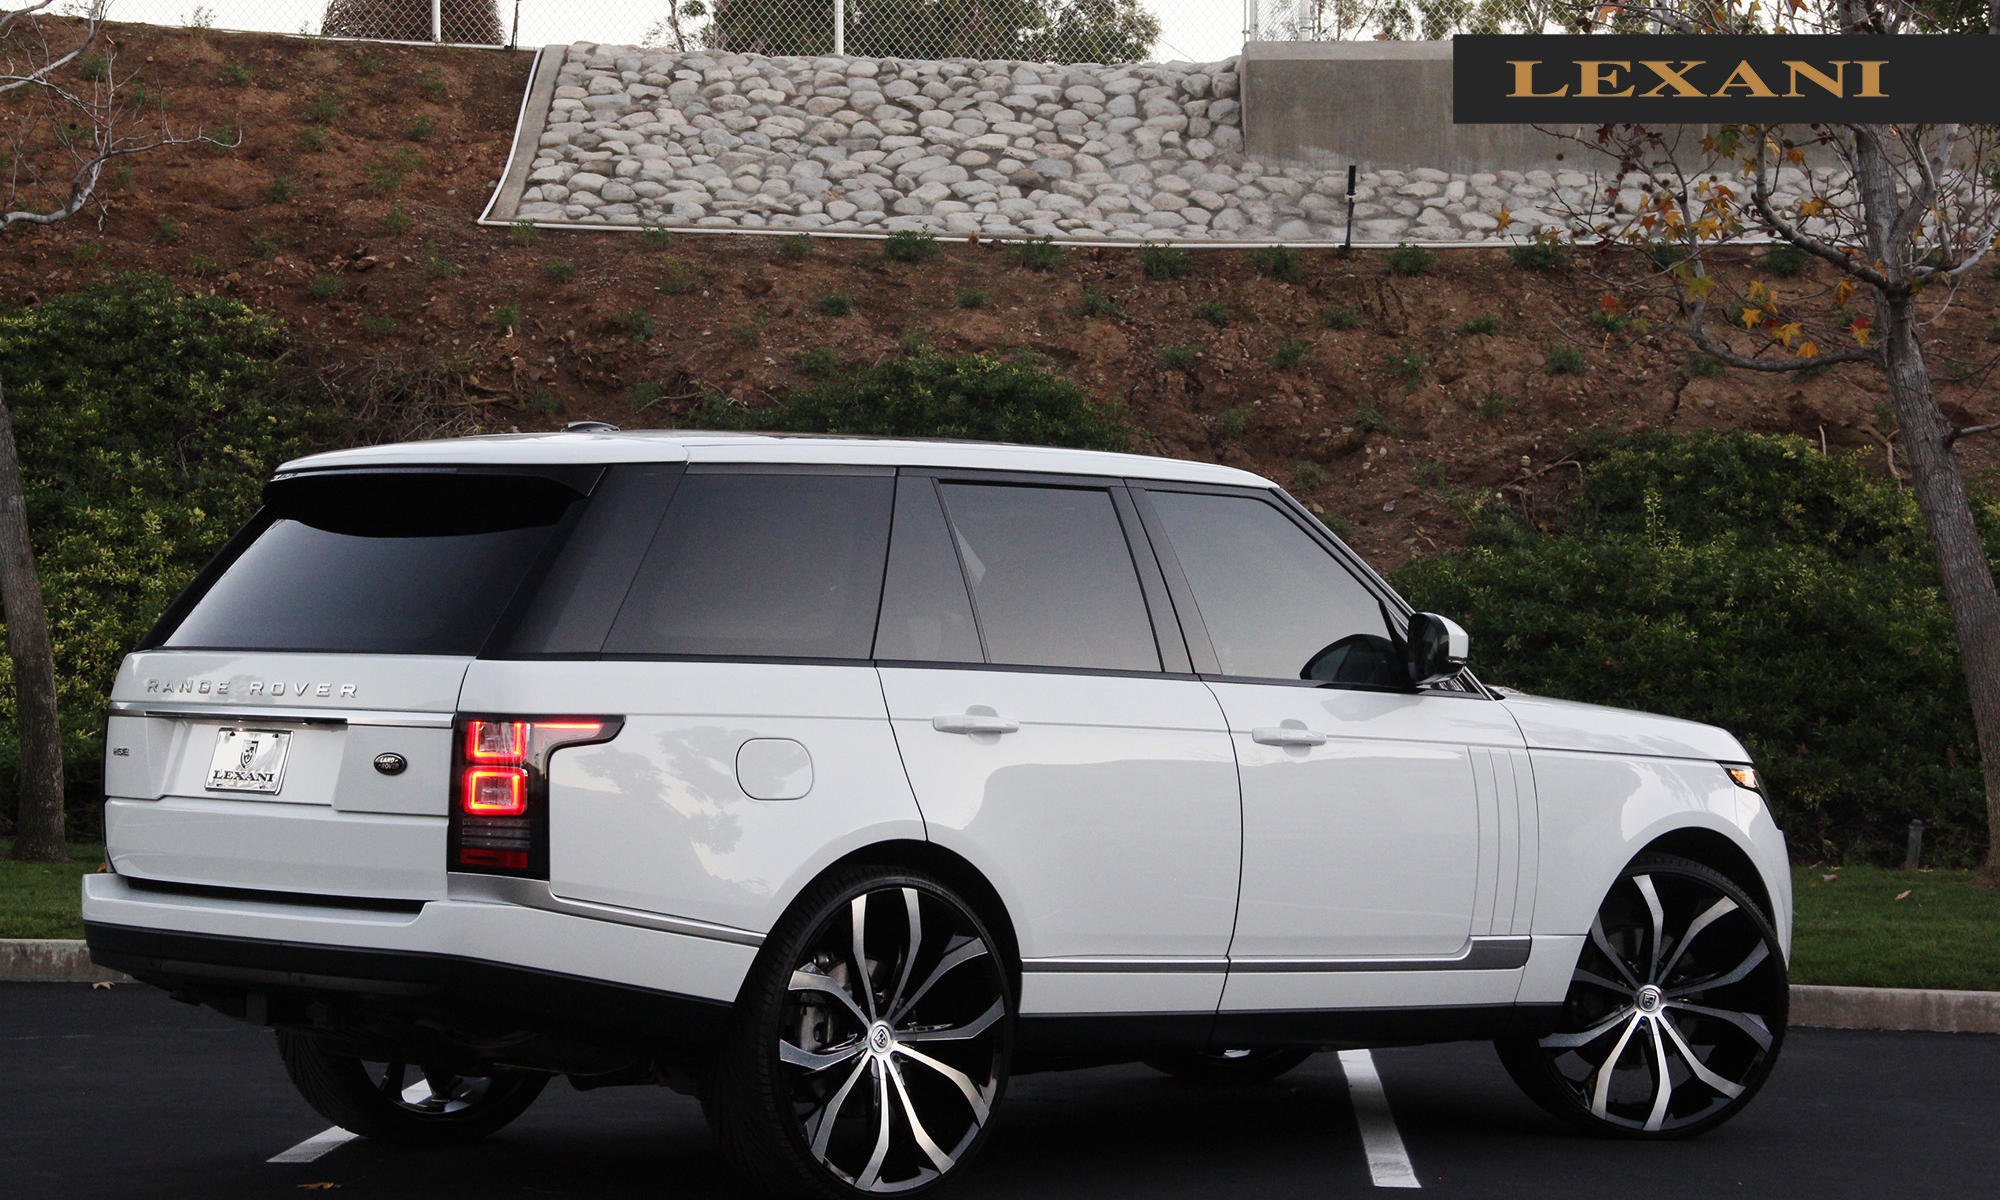 Deluxe White Range Rover on a Set of Custom Rims — CARiD Gallery